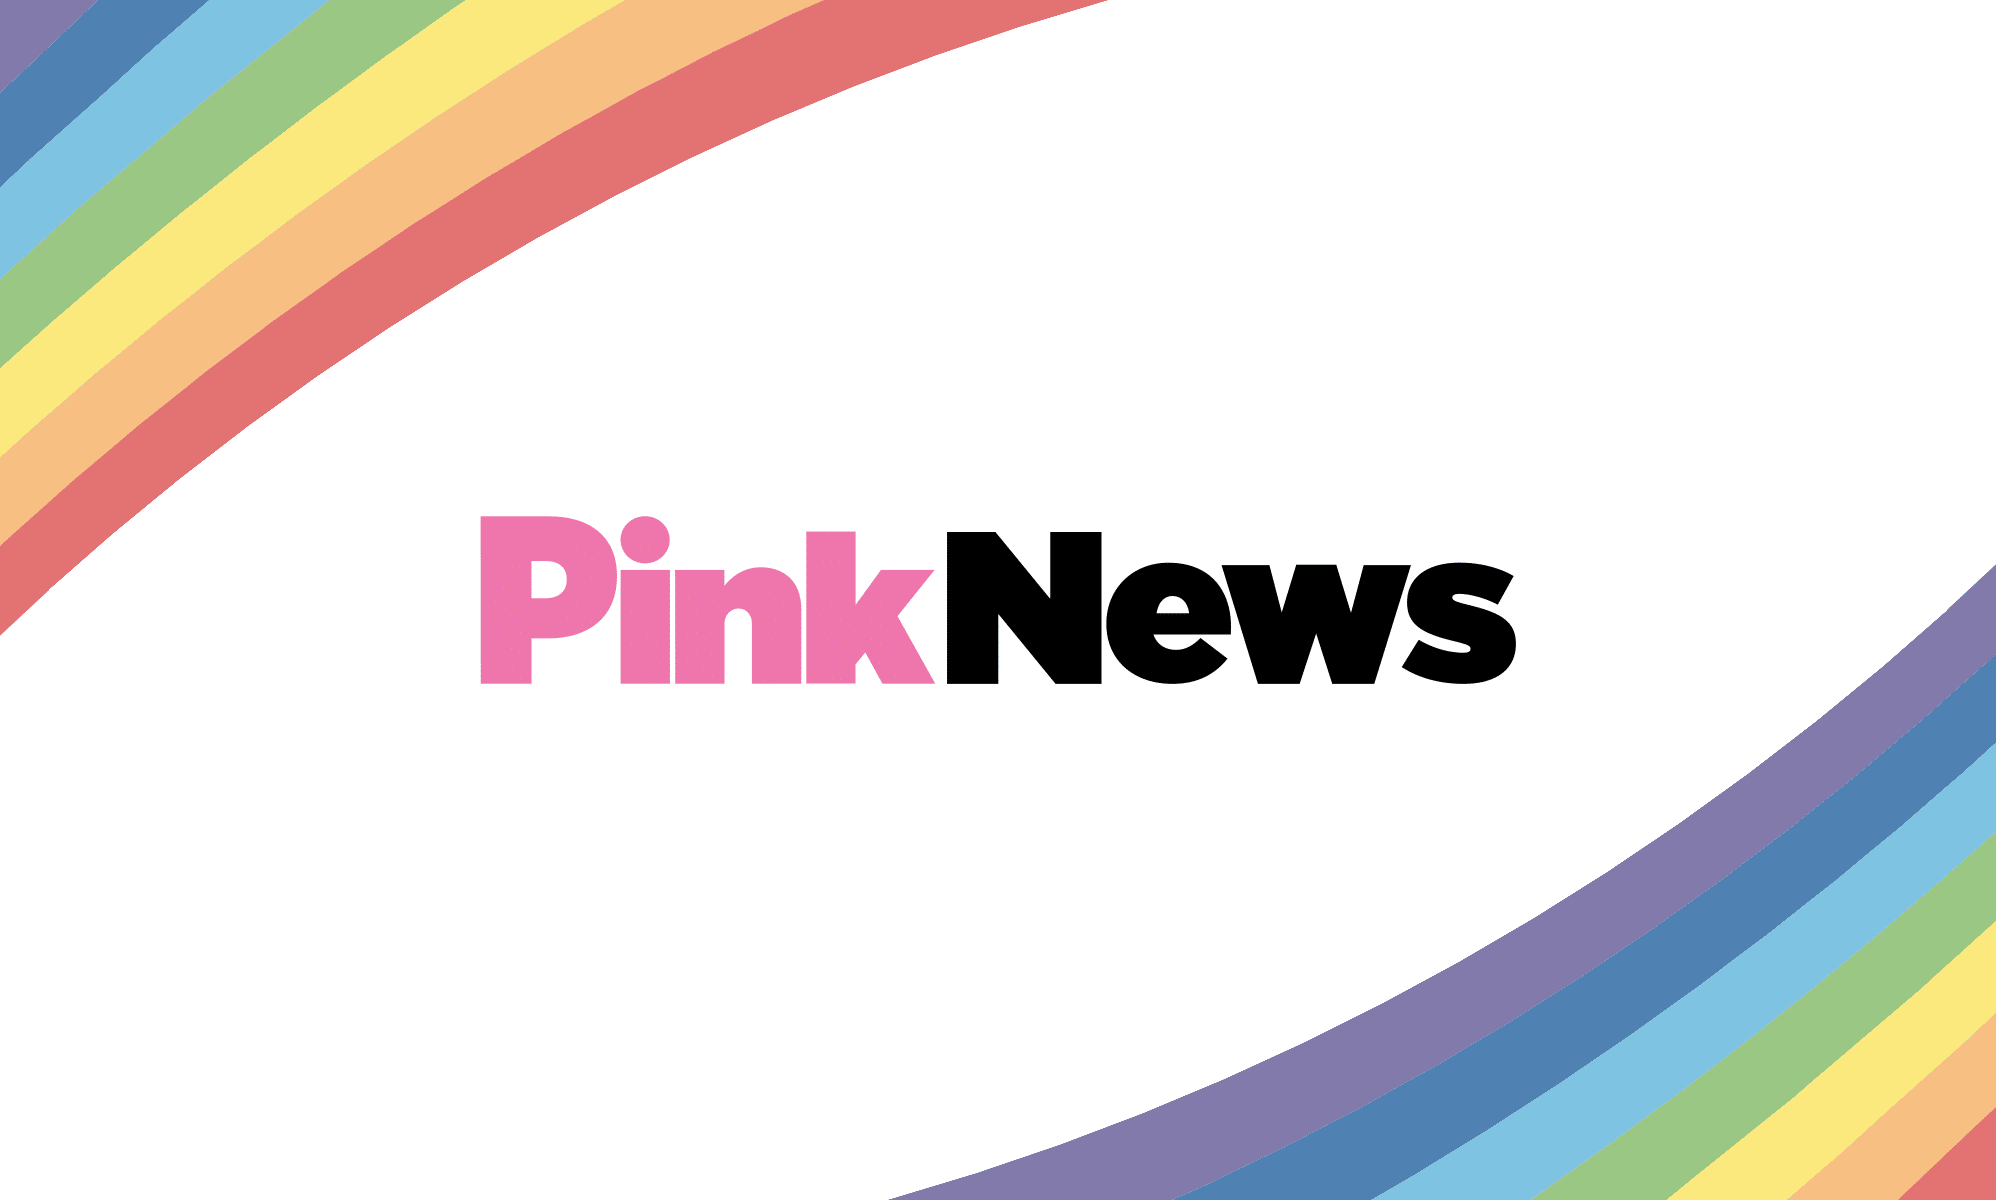 Data reveals surge in anti-trans hate crimes reported to police in recent years